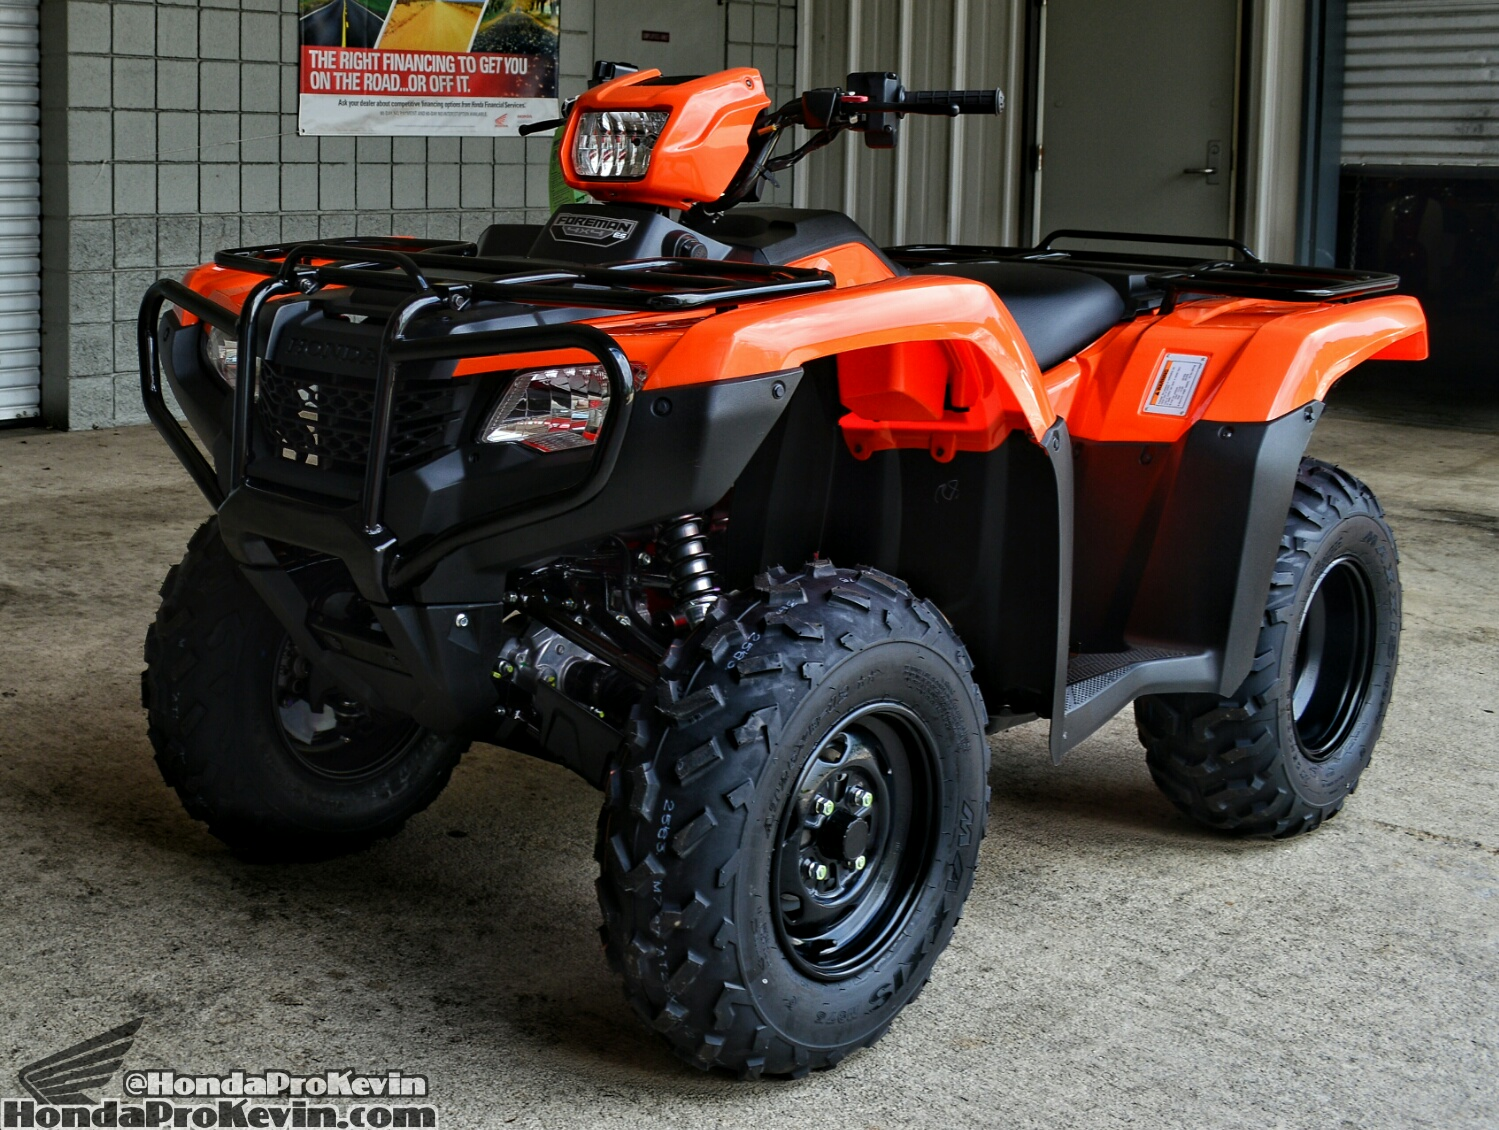 2018 Honda Foreman 500 ATV Review / Specs - Horsepower / Price / Four Wheeler / 4x4 Quad - TRX500